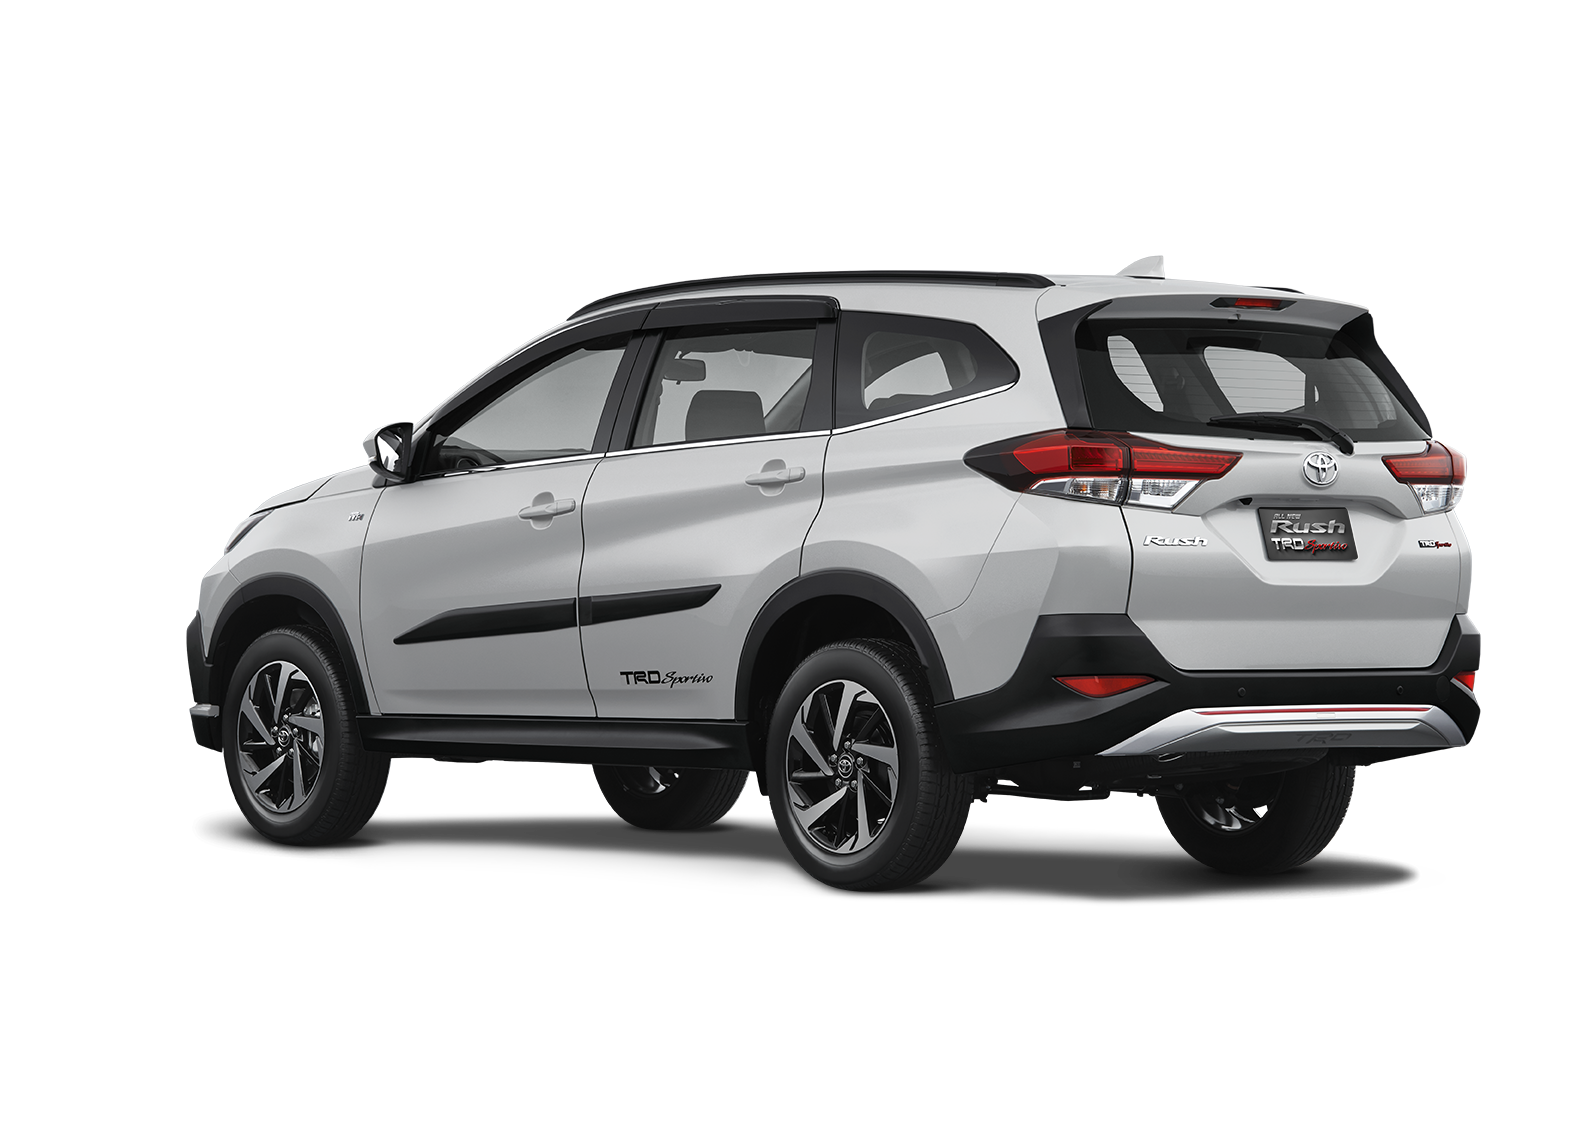 All New Toyota Rush 2017 Indonesia >> New 2018 Toyota Rush SUV makes debut in Indonesia Paul Tan - Image 742833